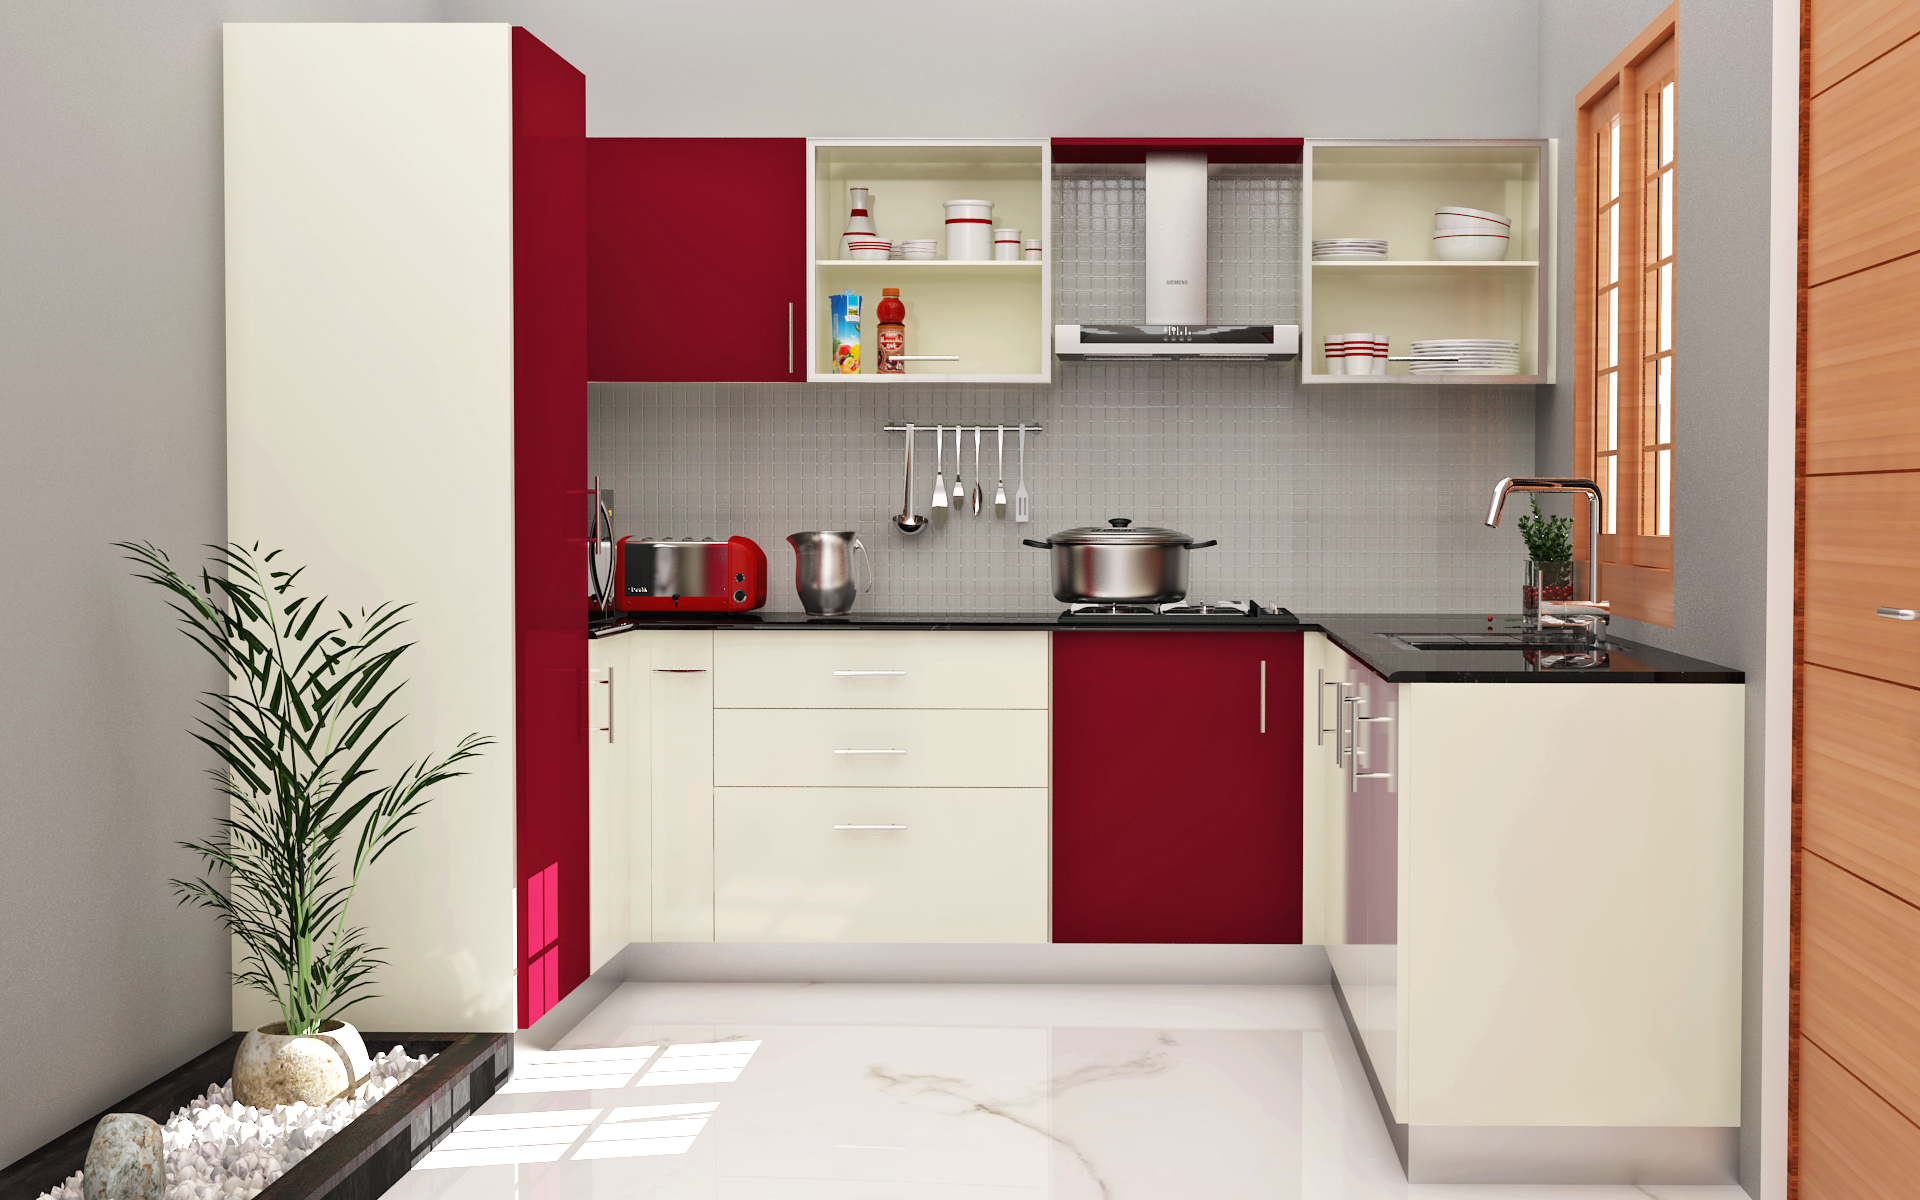 modular kitchen designs: 4 ways to go glossy - homelane